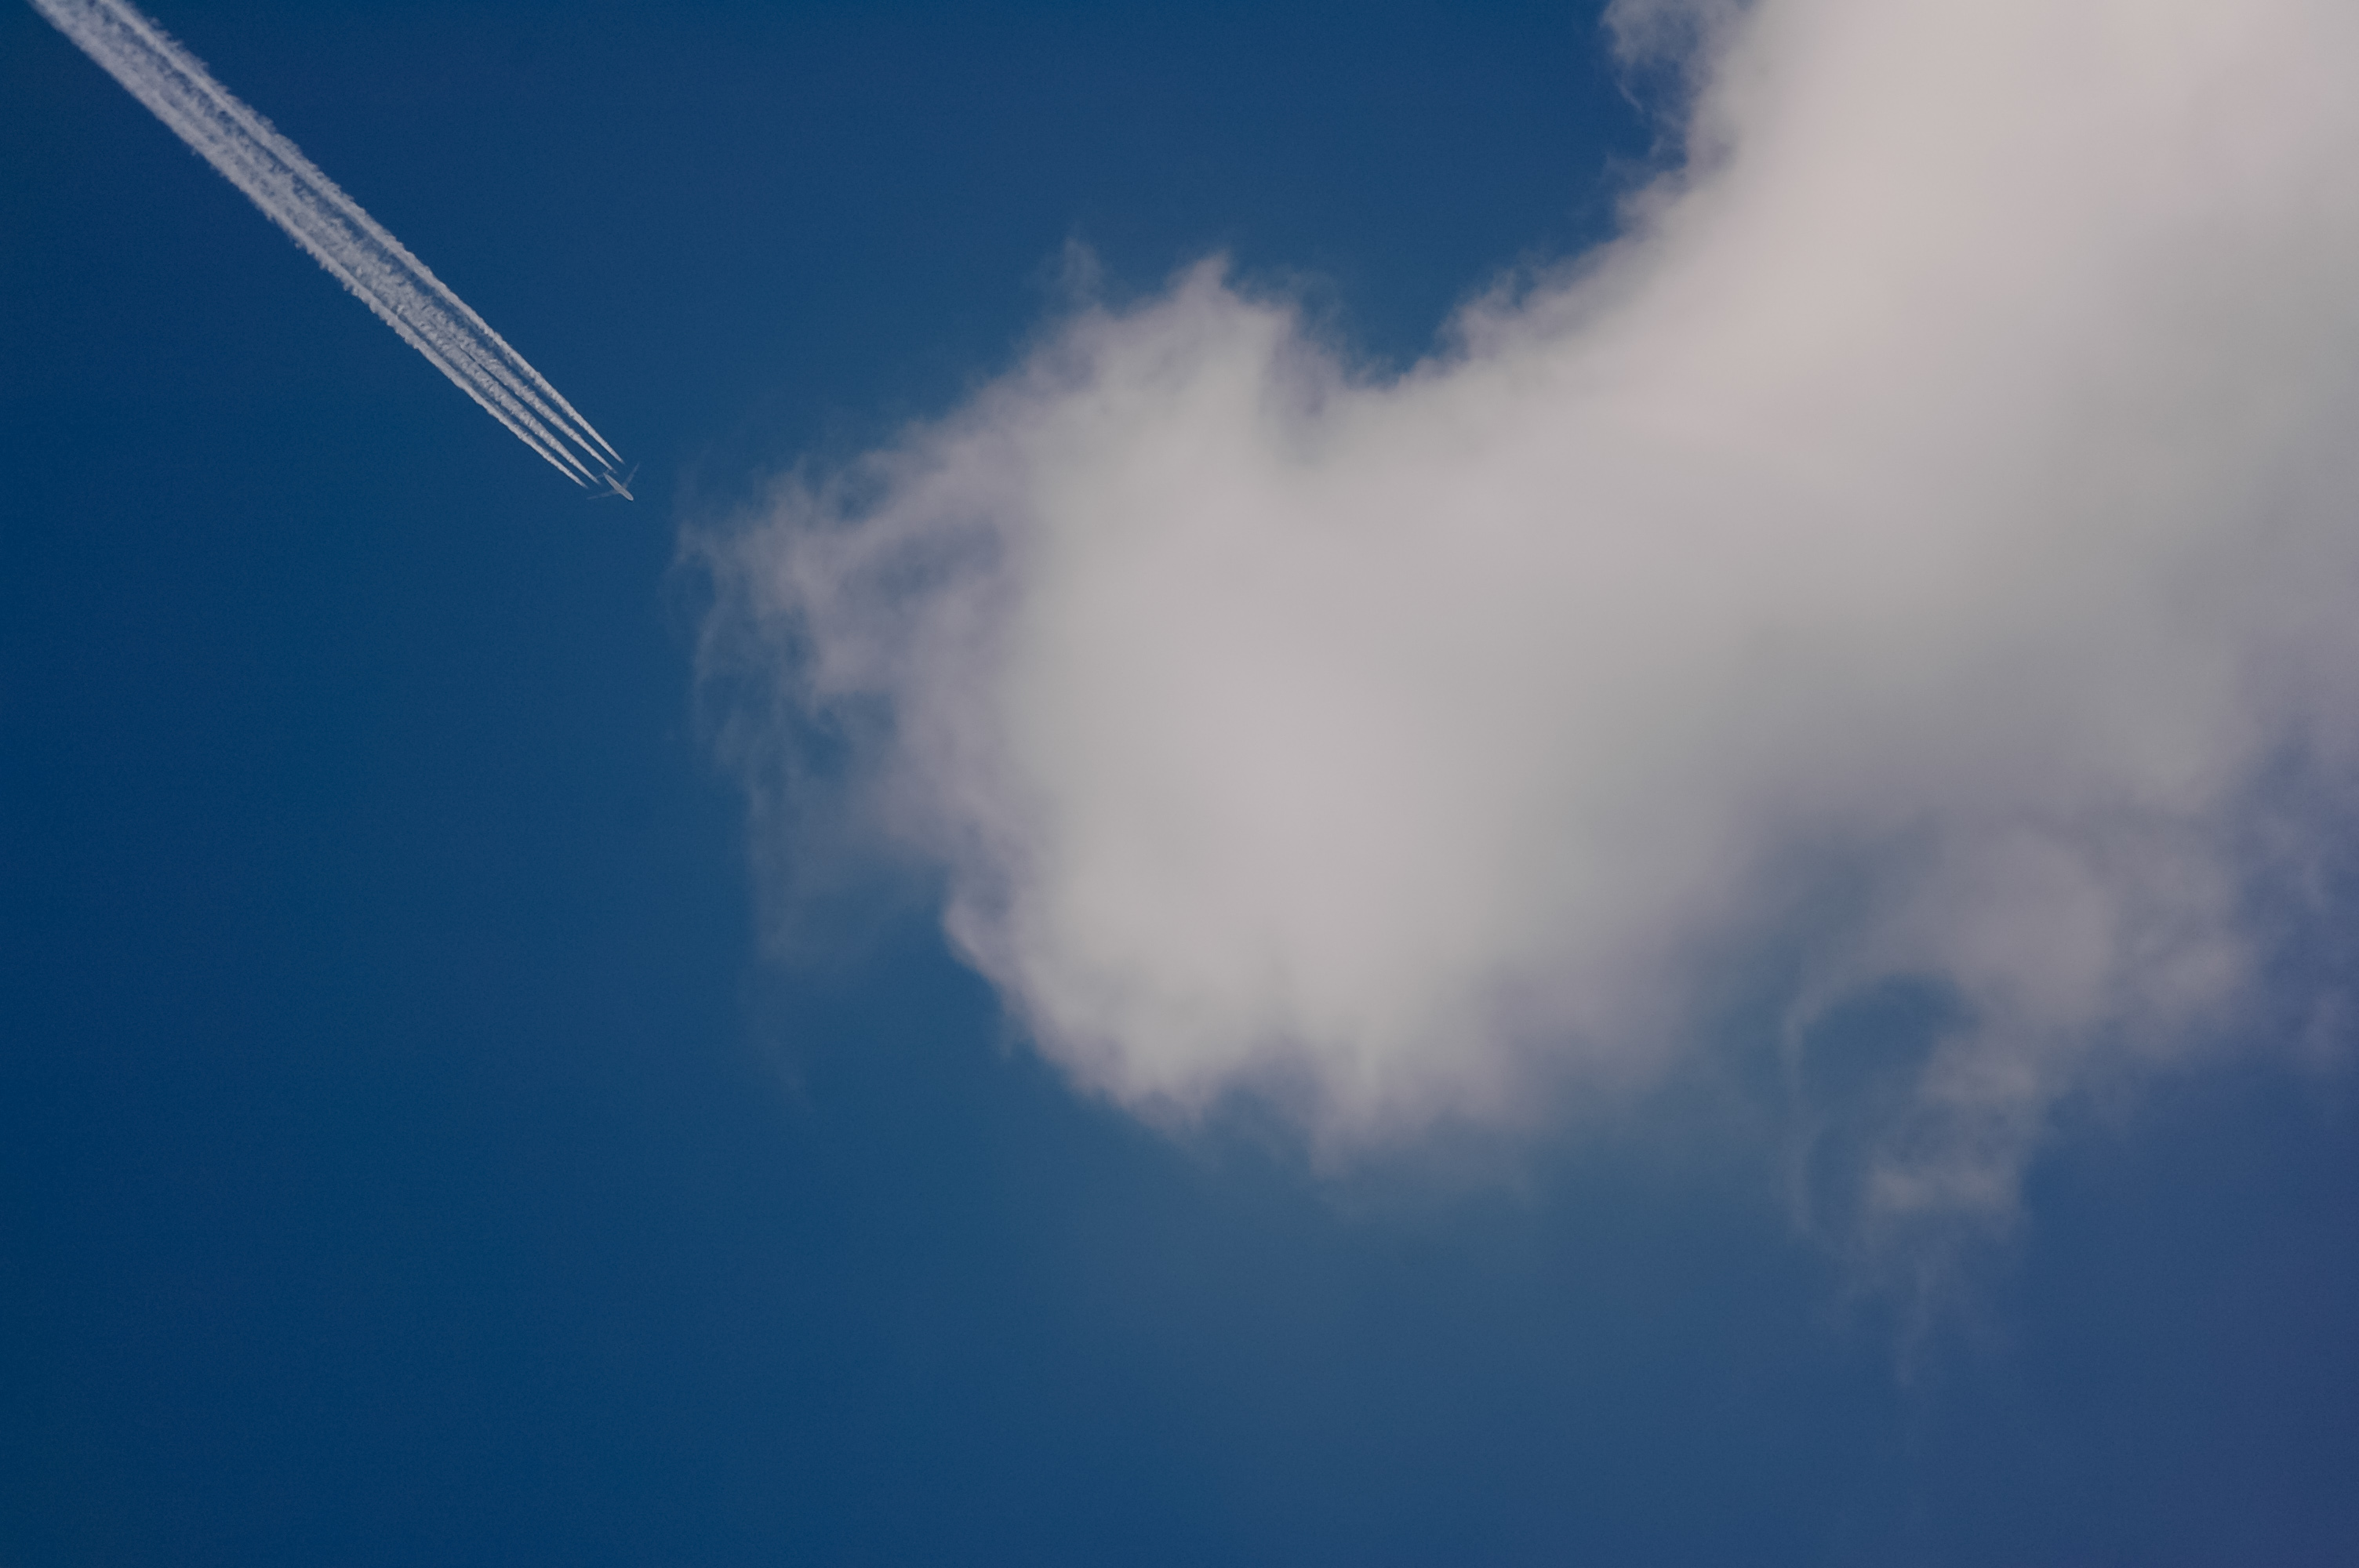 White cloud trail from jet flying high in the sky